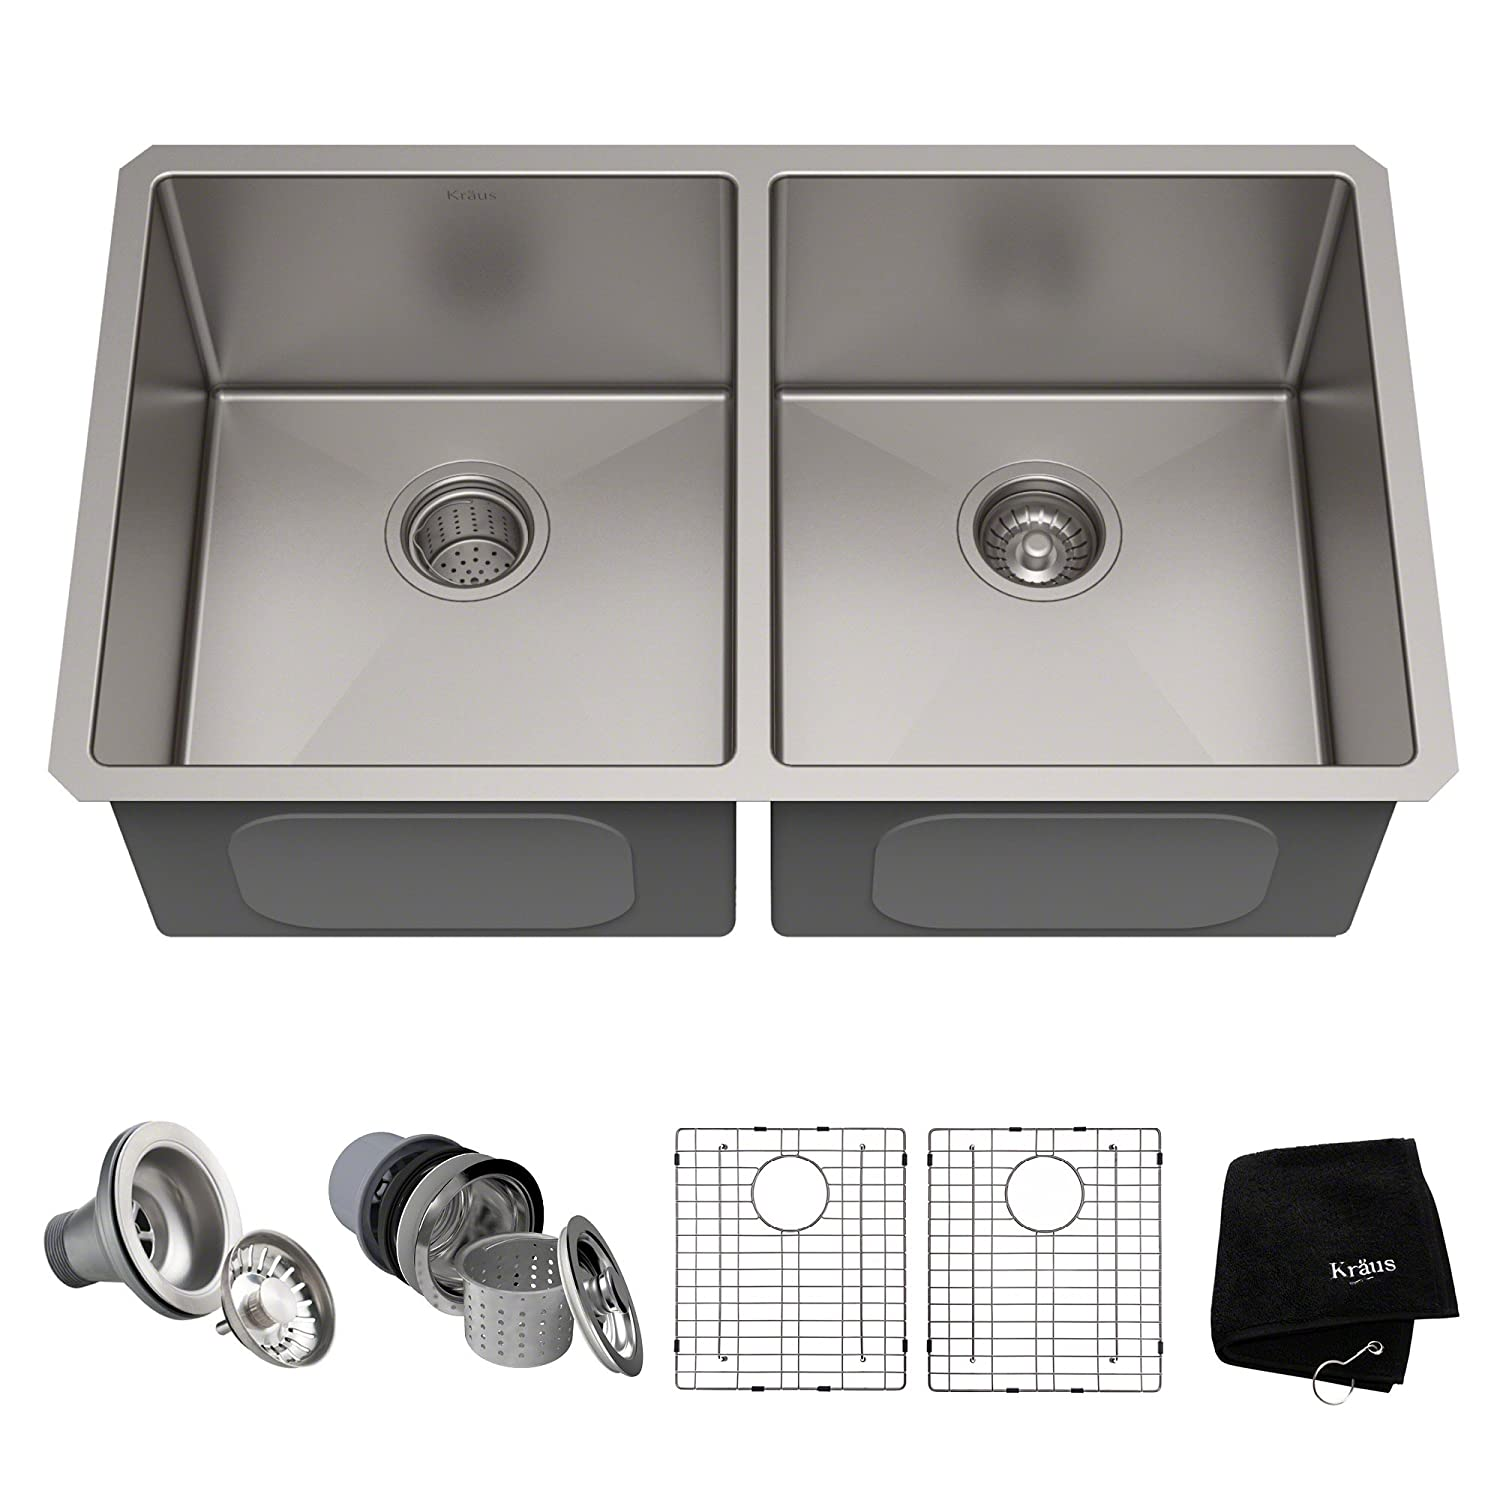 83e08014ad Best Stainless Steel Sinks 2019 (list of sinks that doesn't suck)